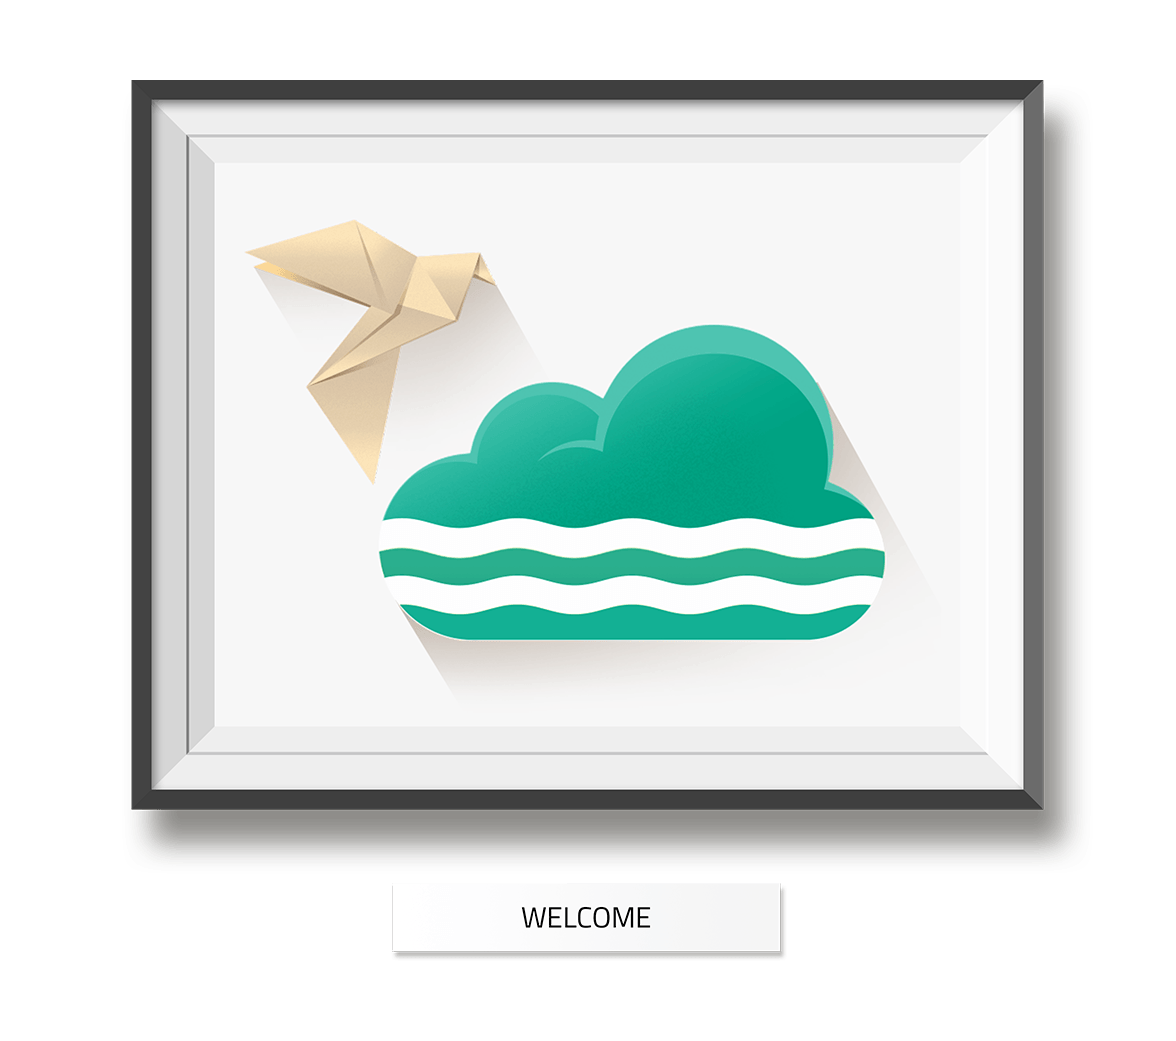 Alster Cloud Web Site - Welcome Screen Illustration